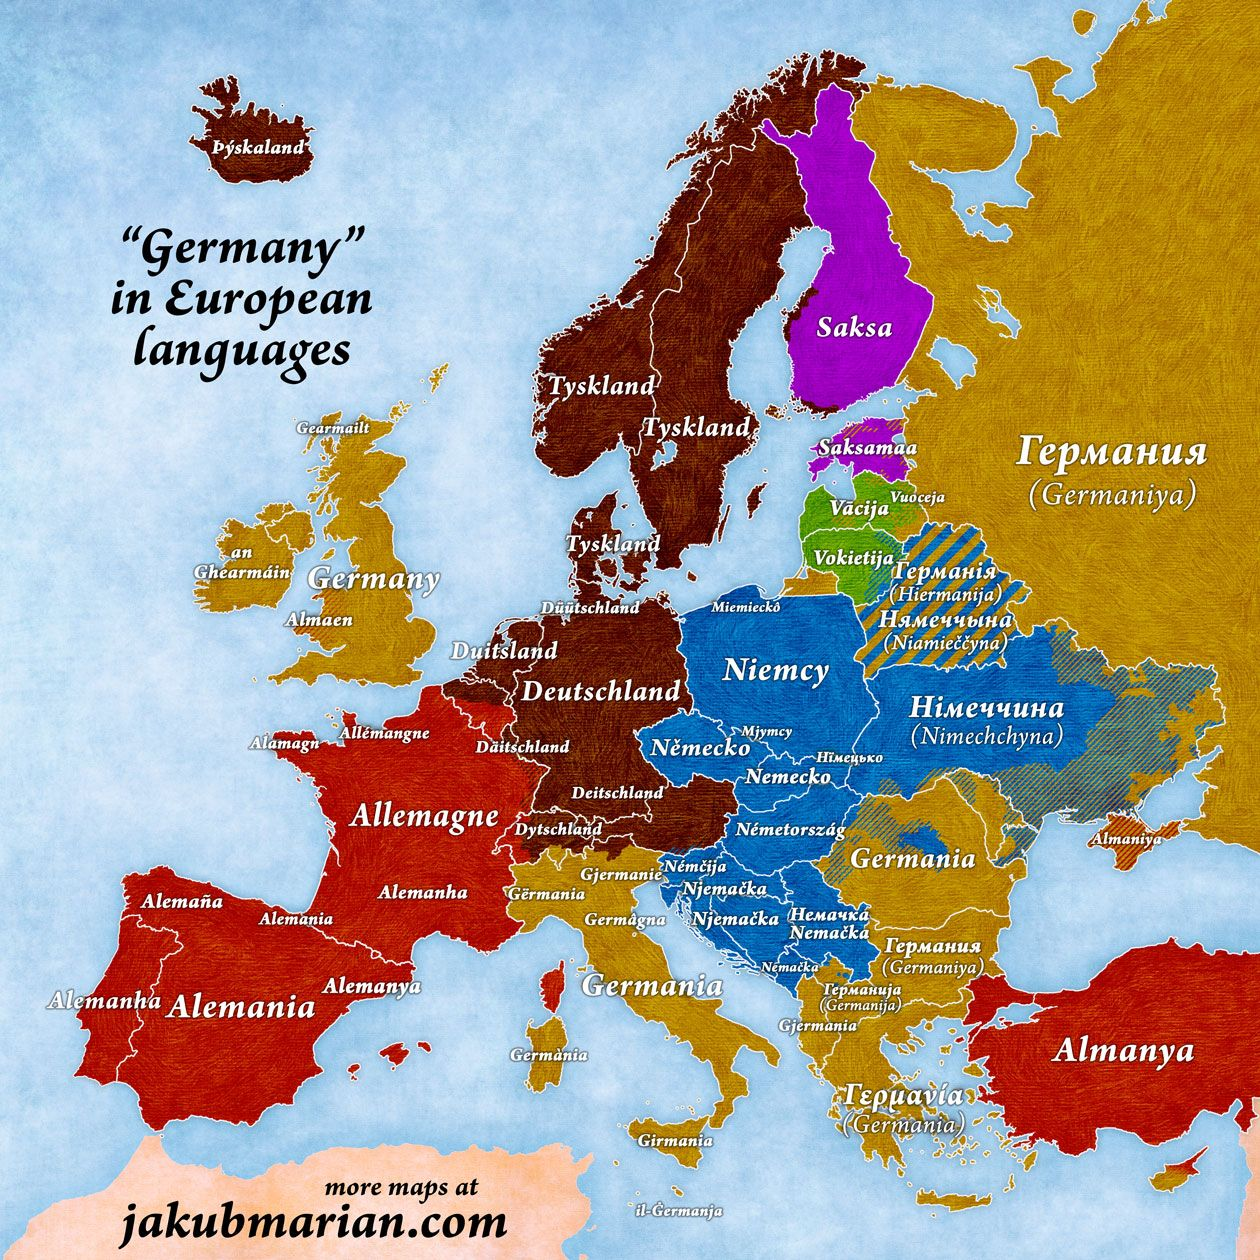 map of europe in deutsch Names of Germany in European languages | European map, European